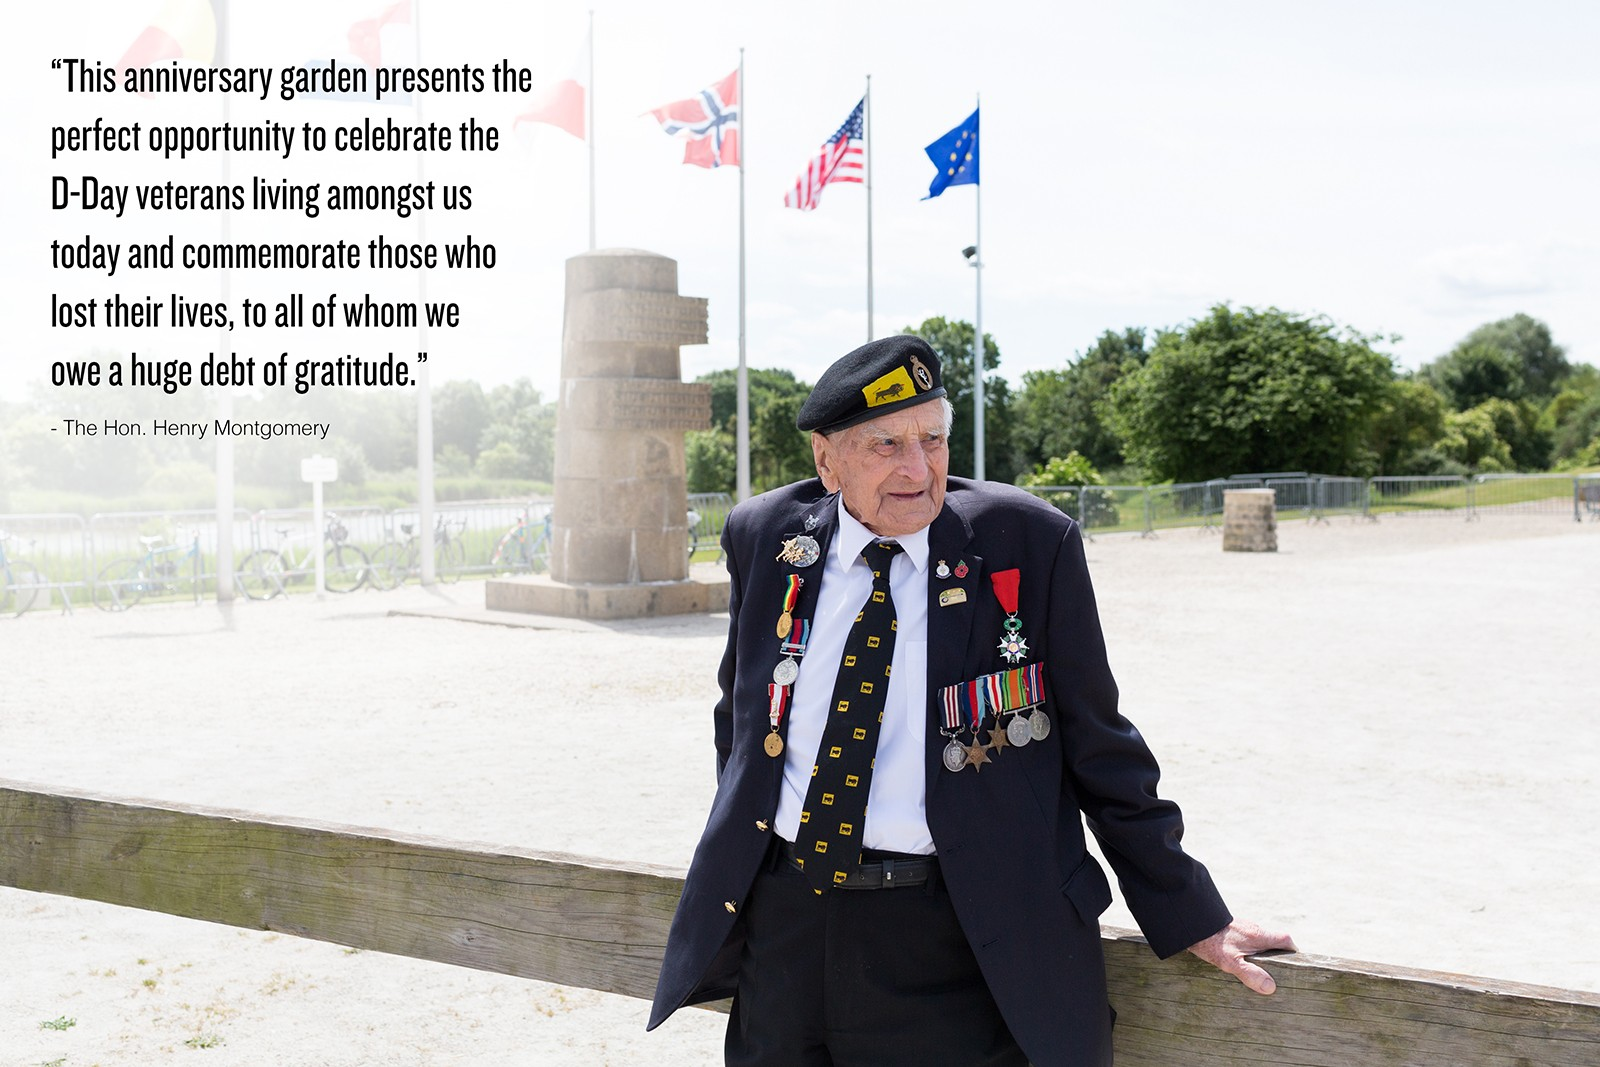 D-Day 75 Garden Bill Pendell MM